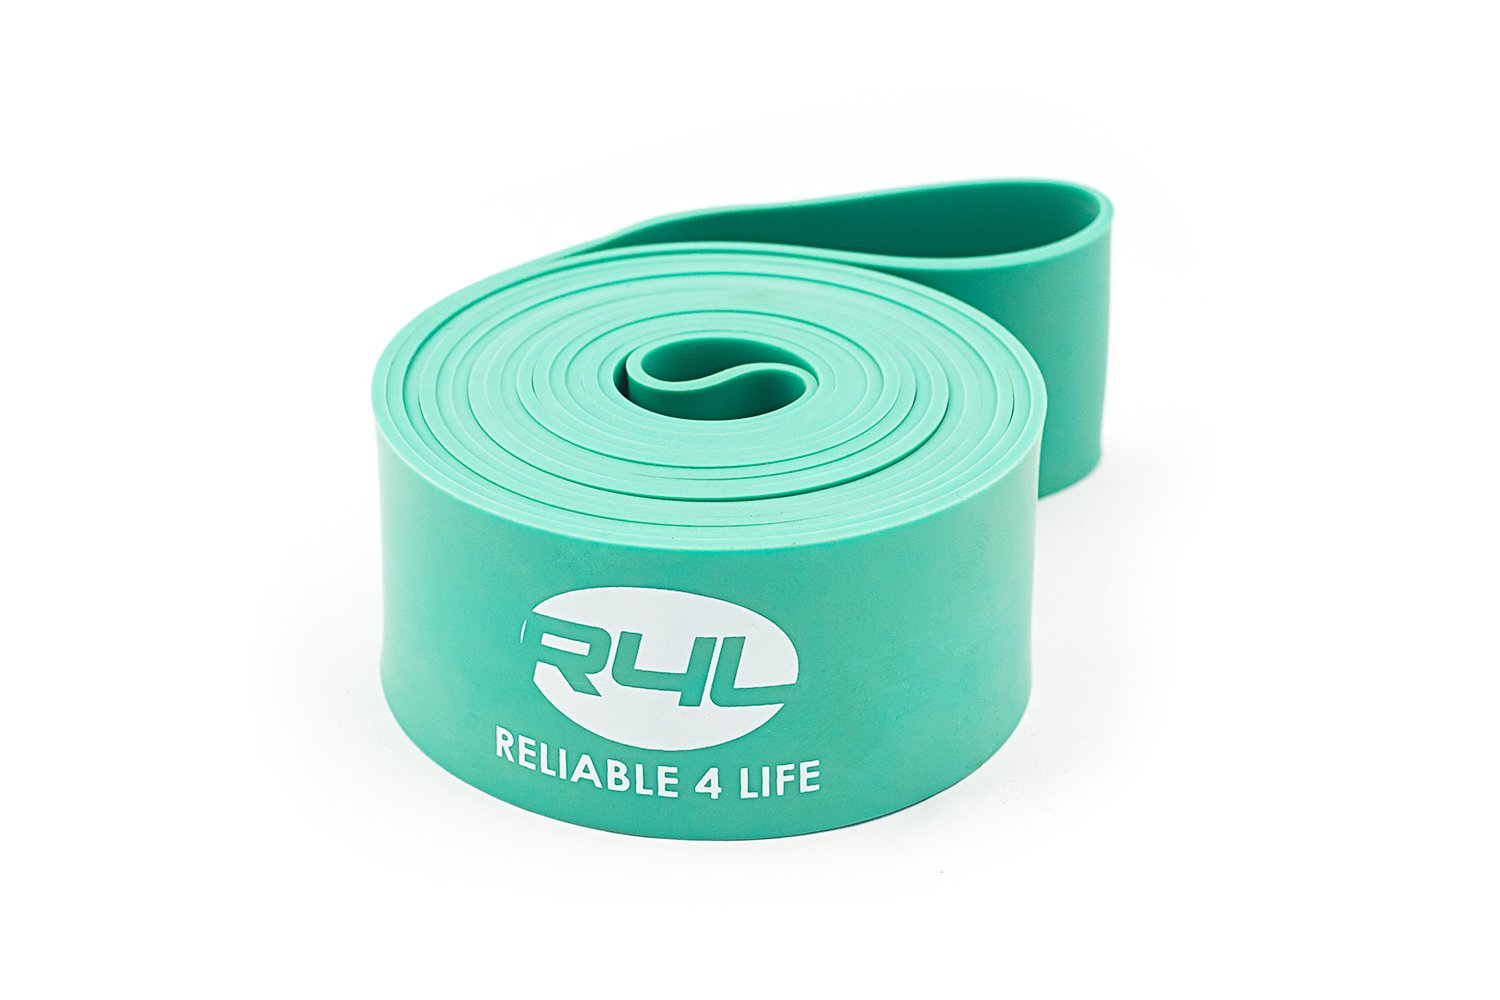 Reliable4life Set of 2 Stretch Band Exercise Straps (Big band & Small band) for Sports, Yoga, Dance, Ballet, Gymnastics and Other Training with eBook of 15 Illustrated Exercises by Reliable4life